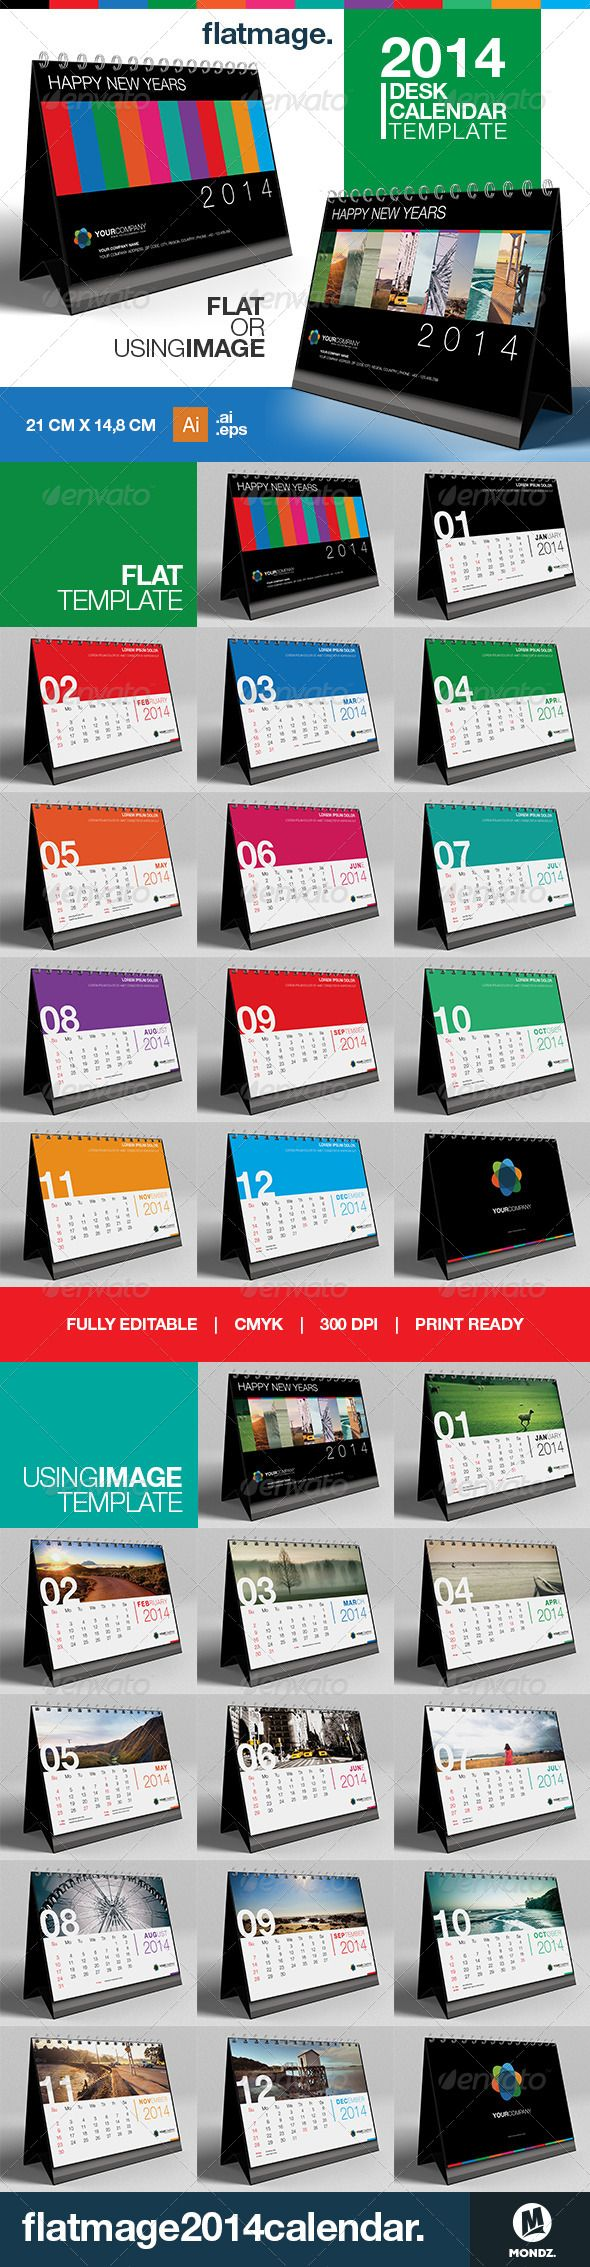 Flatmage Desk Calendar 2014 Template #GraphicRiver